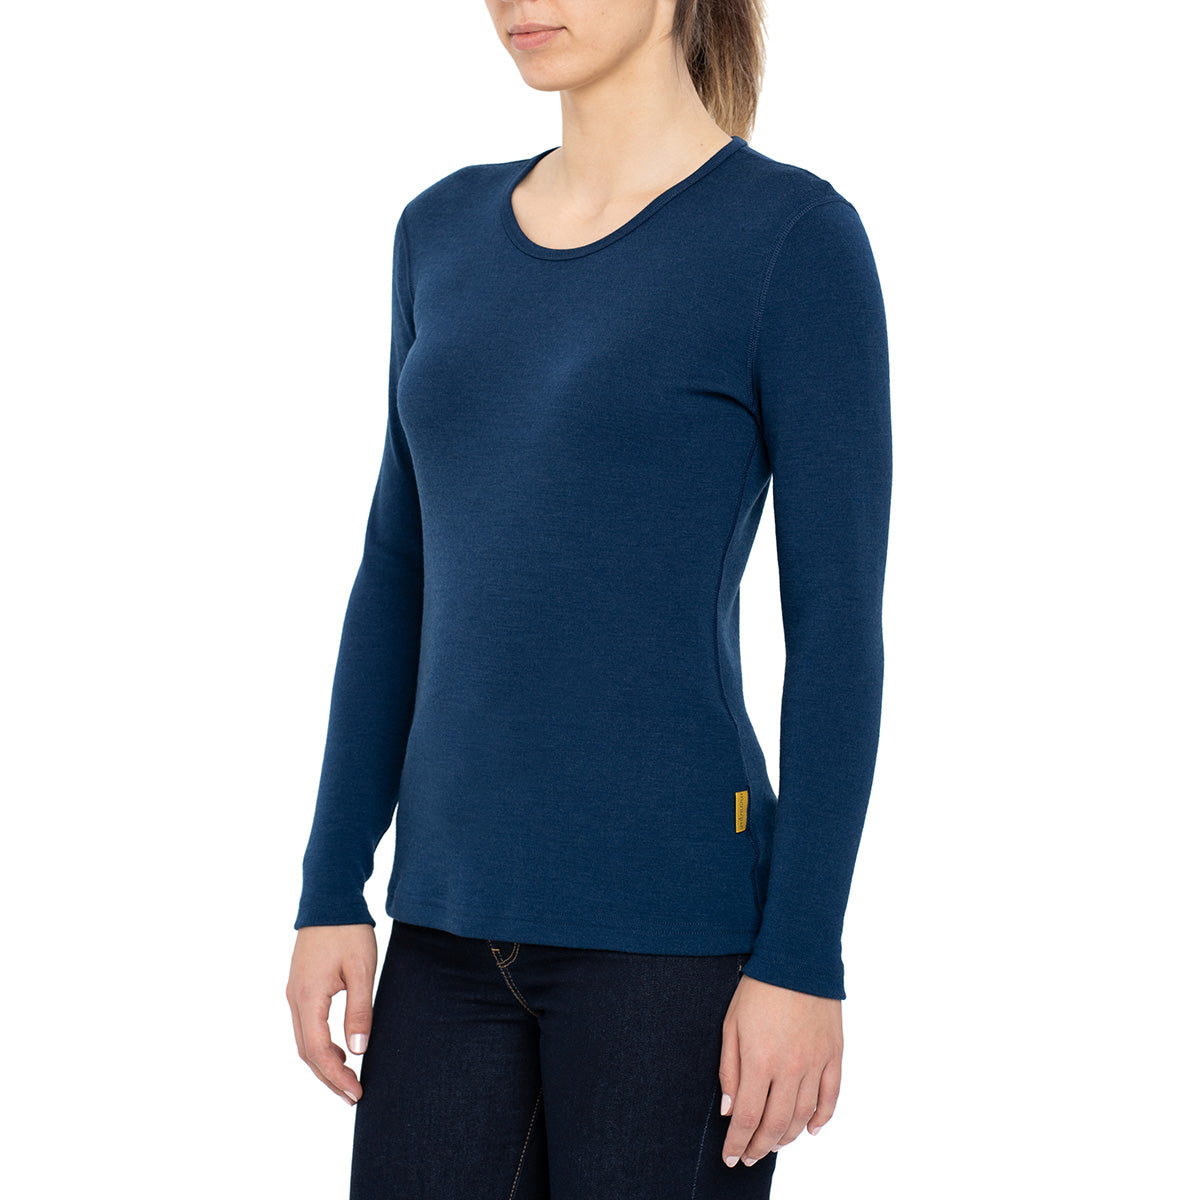 menique Women's Merino 250 Long Sleeve Crew Dark Blue Color